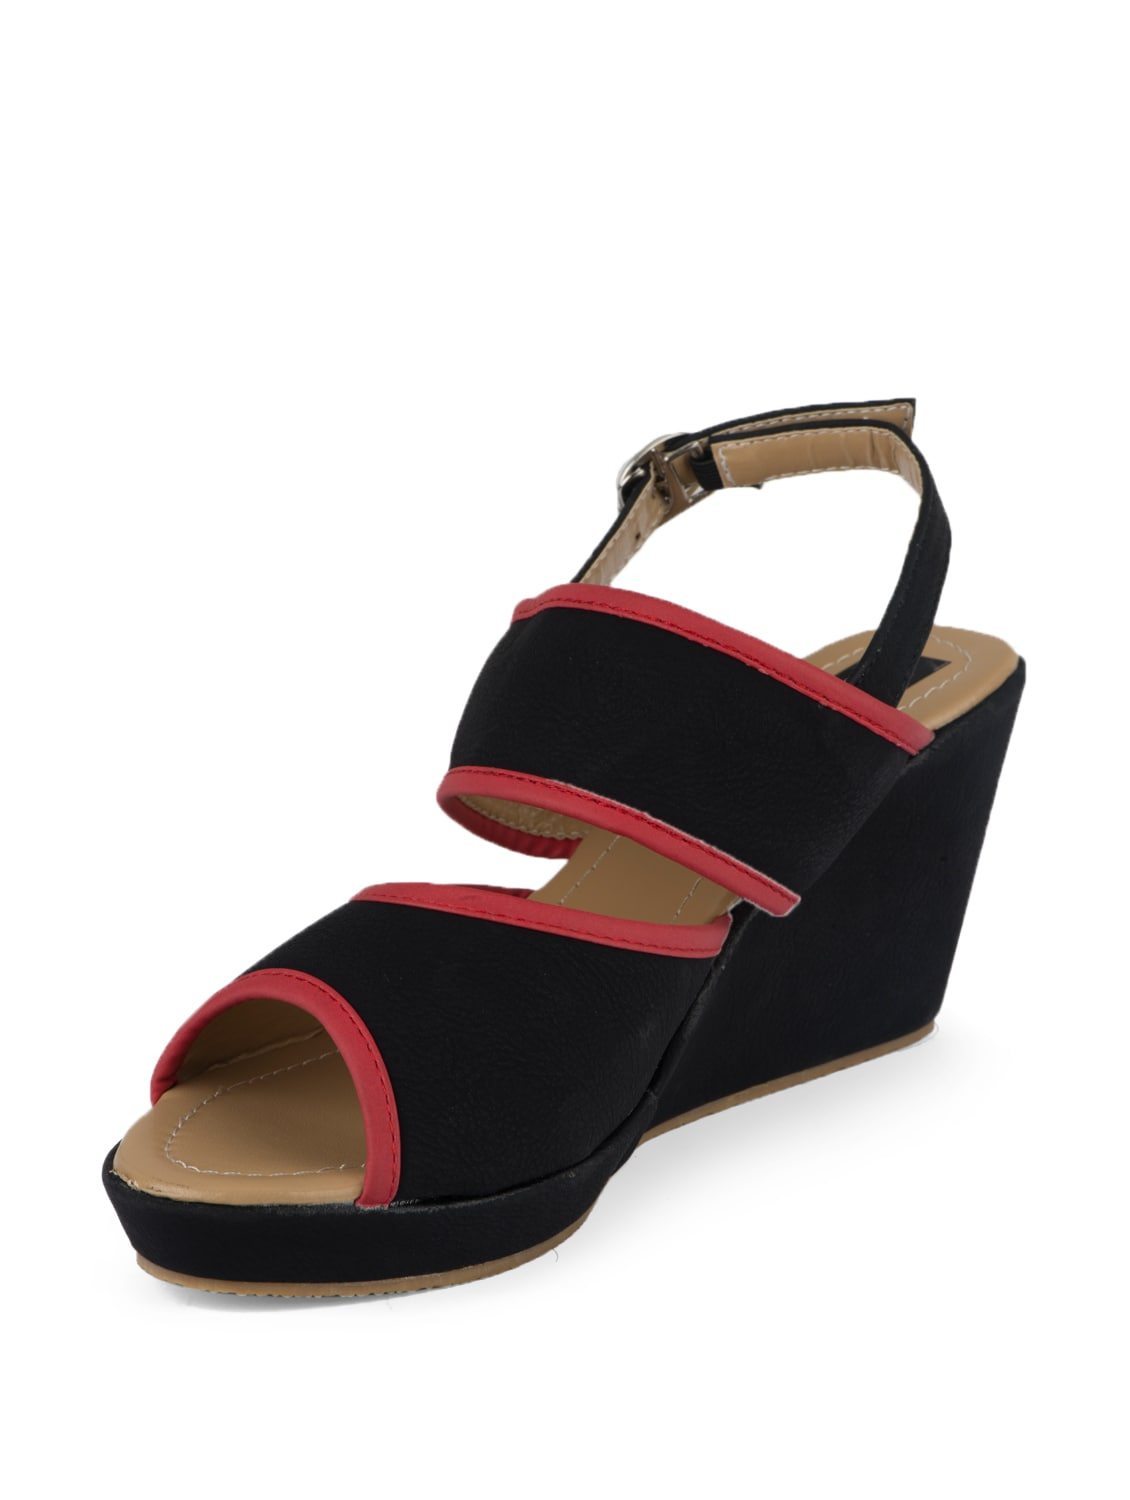 comfortable online Nell Maroon Wedges Heels recommend sale online discounts cheap discount authentic z4wAh9JUE